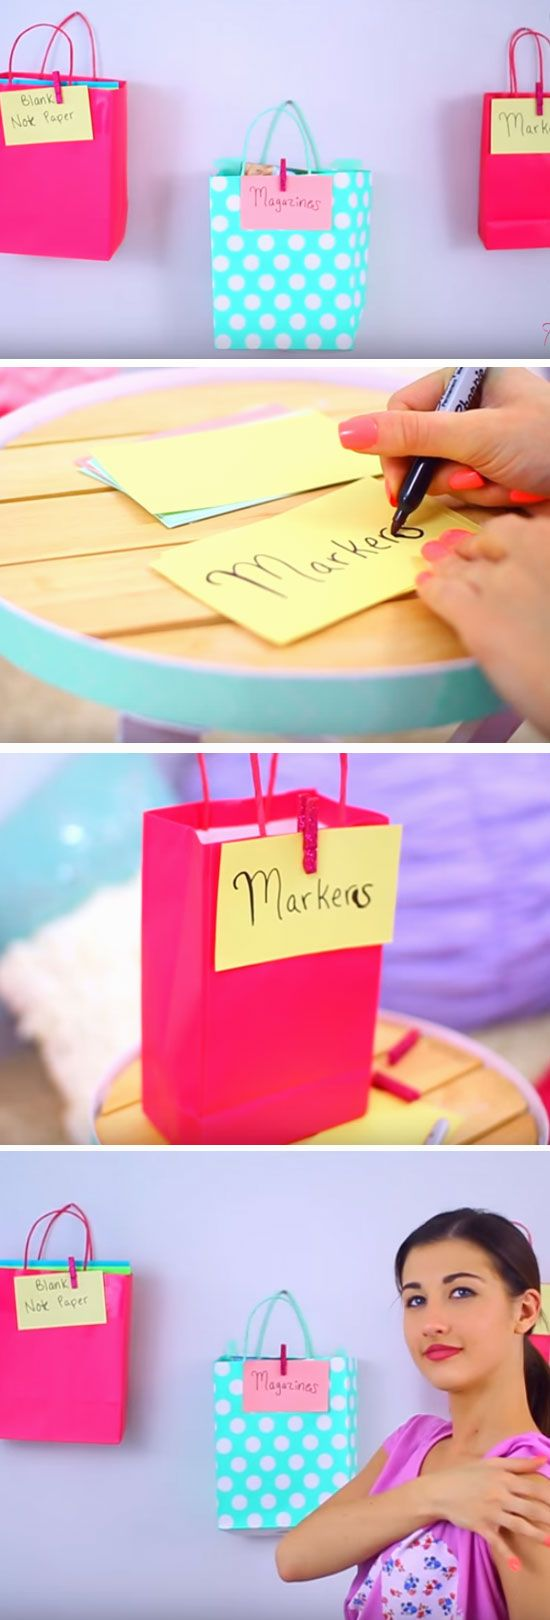 Spring Cleaning Tips best 25+ spring cleaning tips ideas on pinterest | spring cleaning